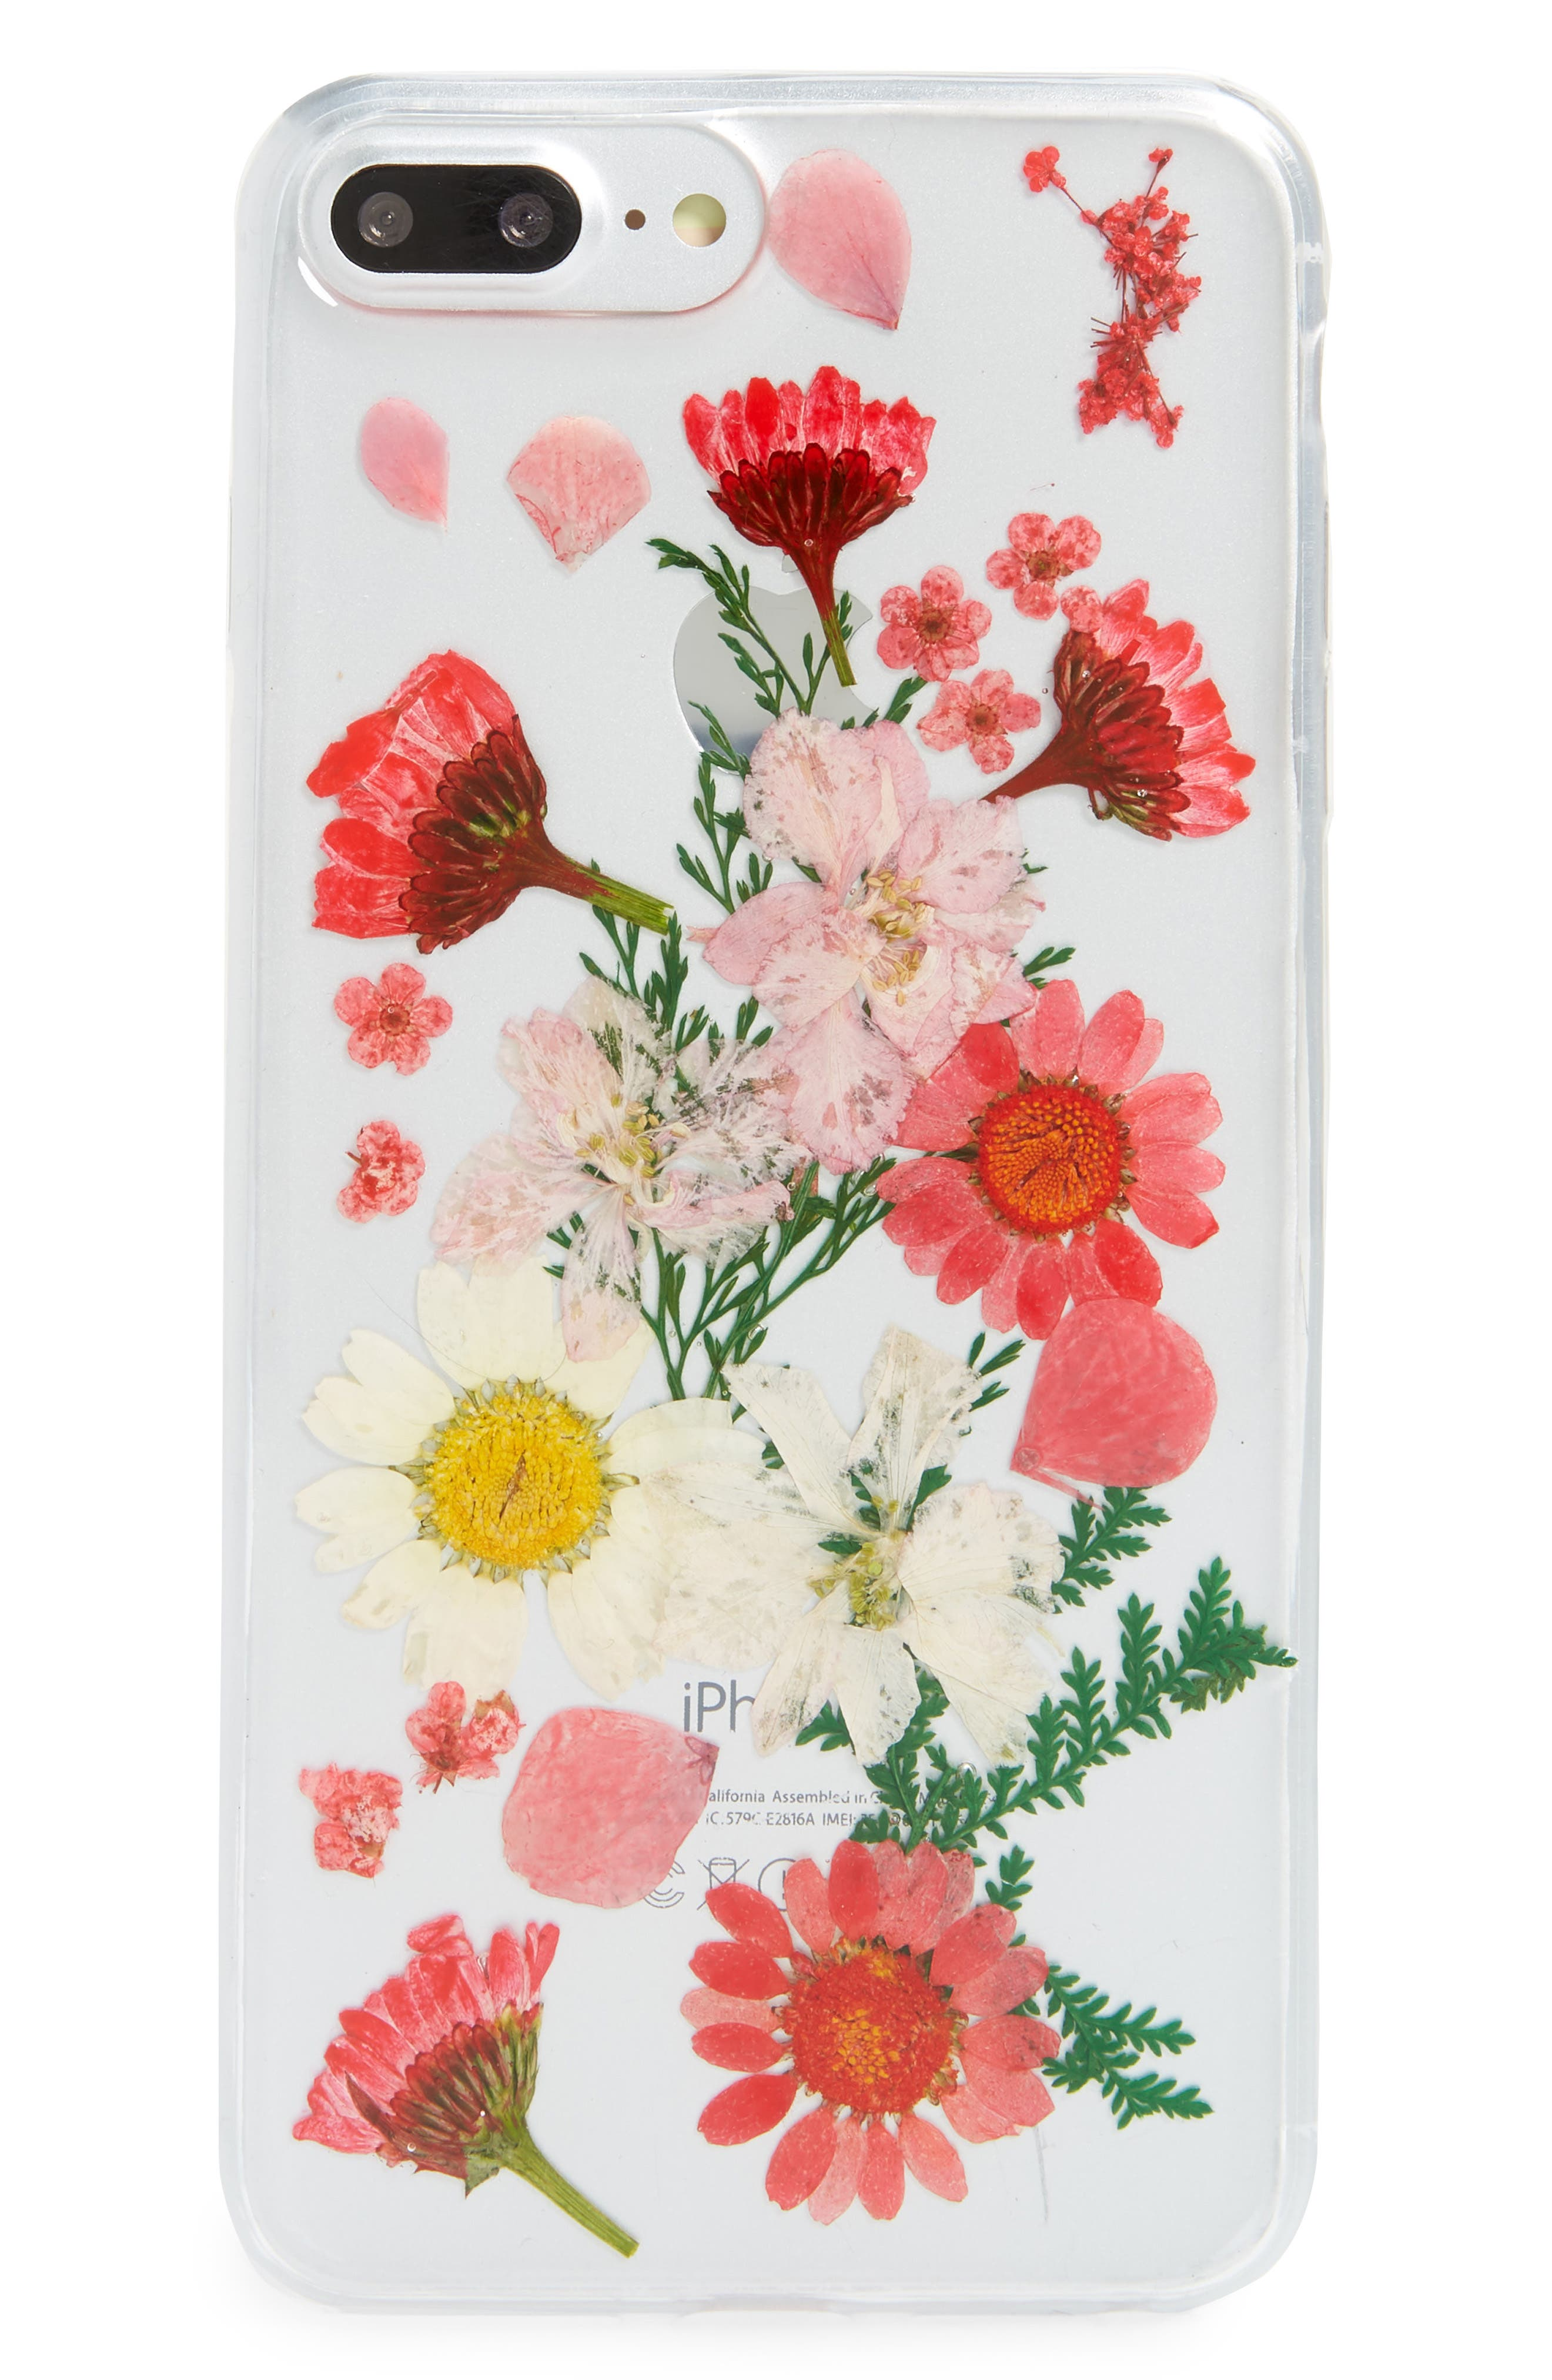 Recover Floral iPhone  6/6s/7/8 Plus Case